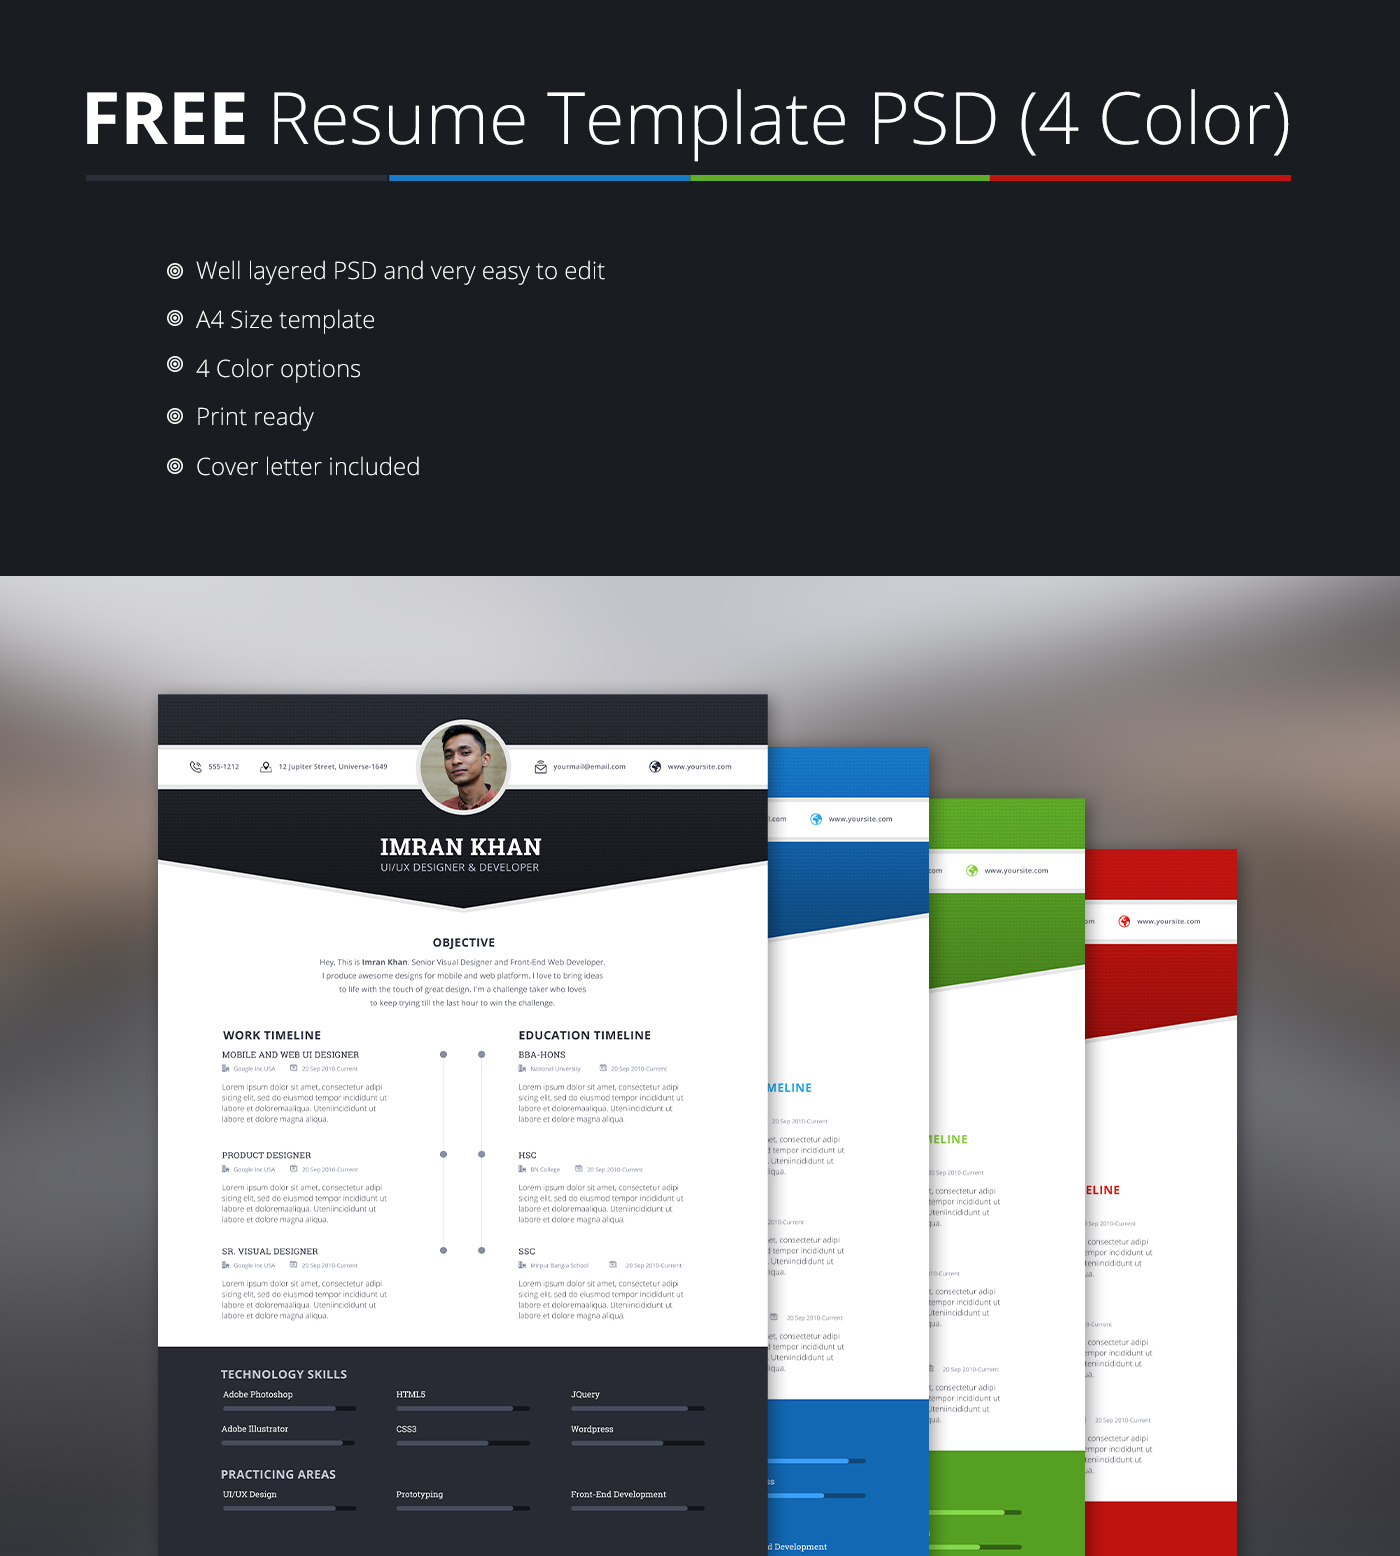 psd resume template in four colors psd resume template in four colors 1